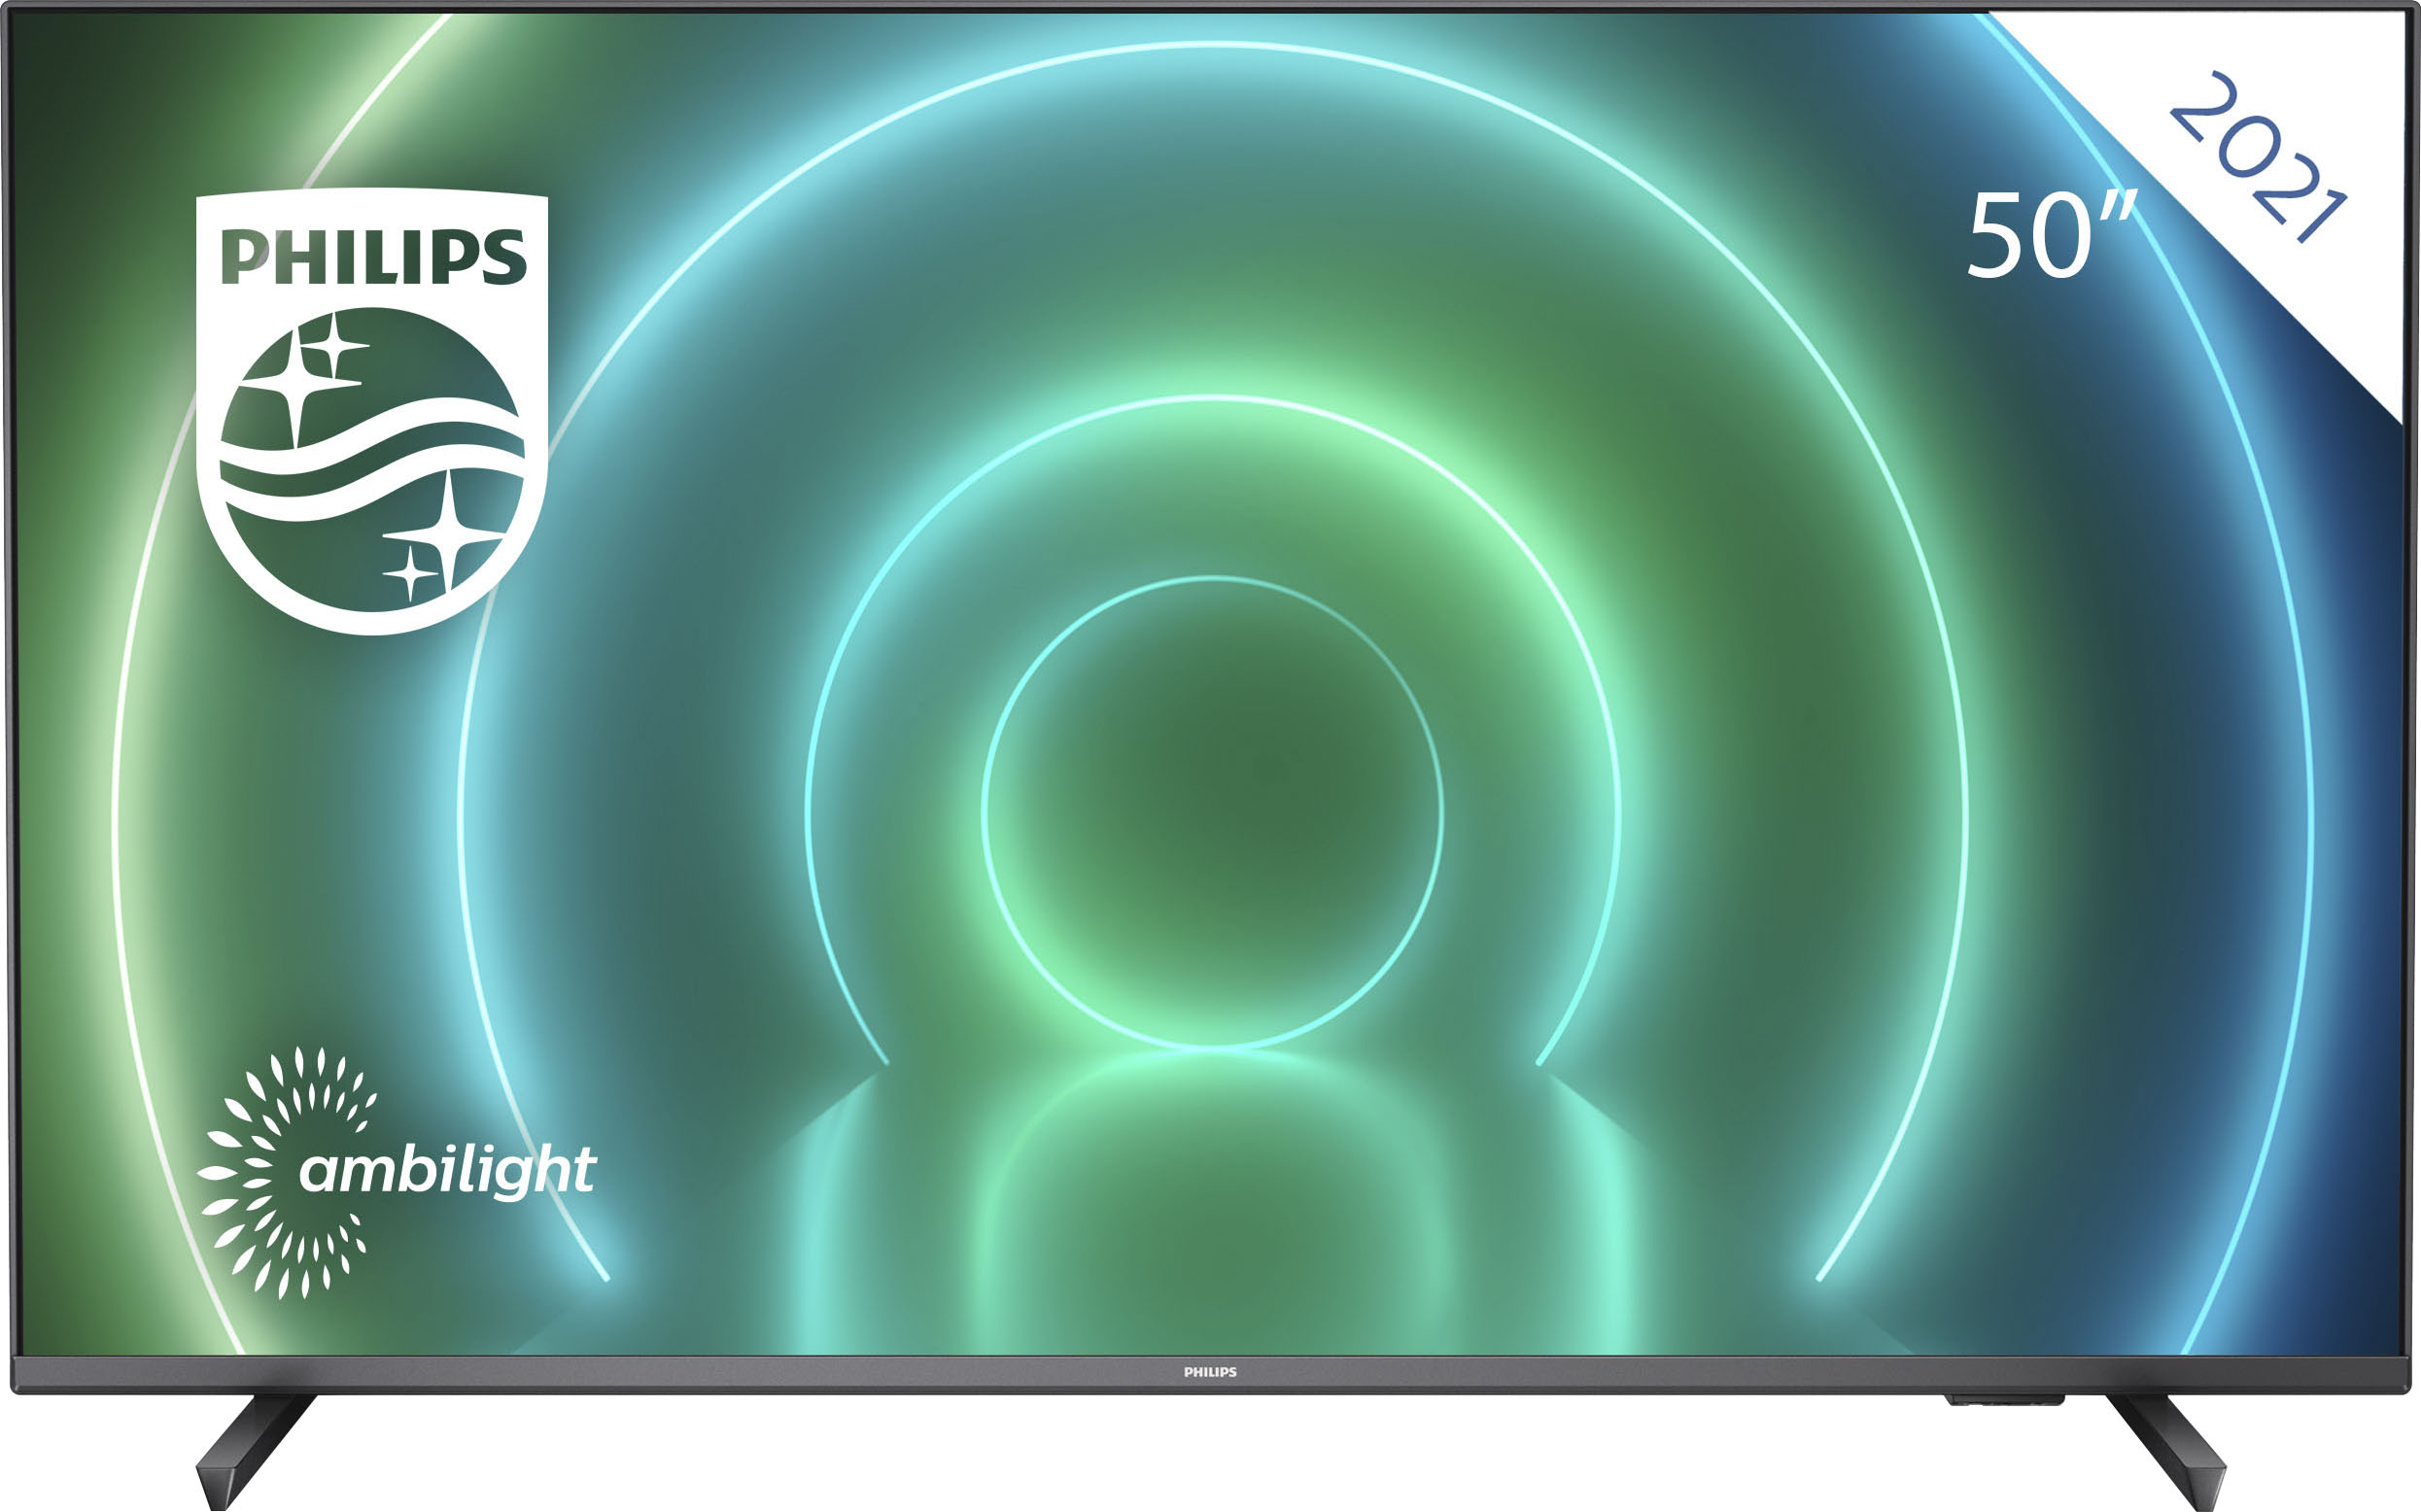 Philips LED-Fernseher 50PUS7906 12 , 126 cm 50 , 4K Ultra HD, Android TV-Smart-TV